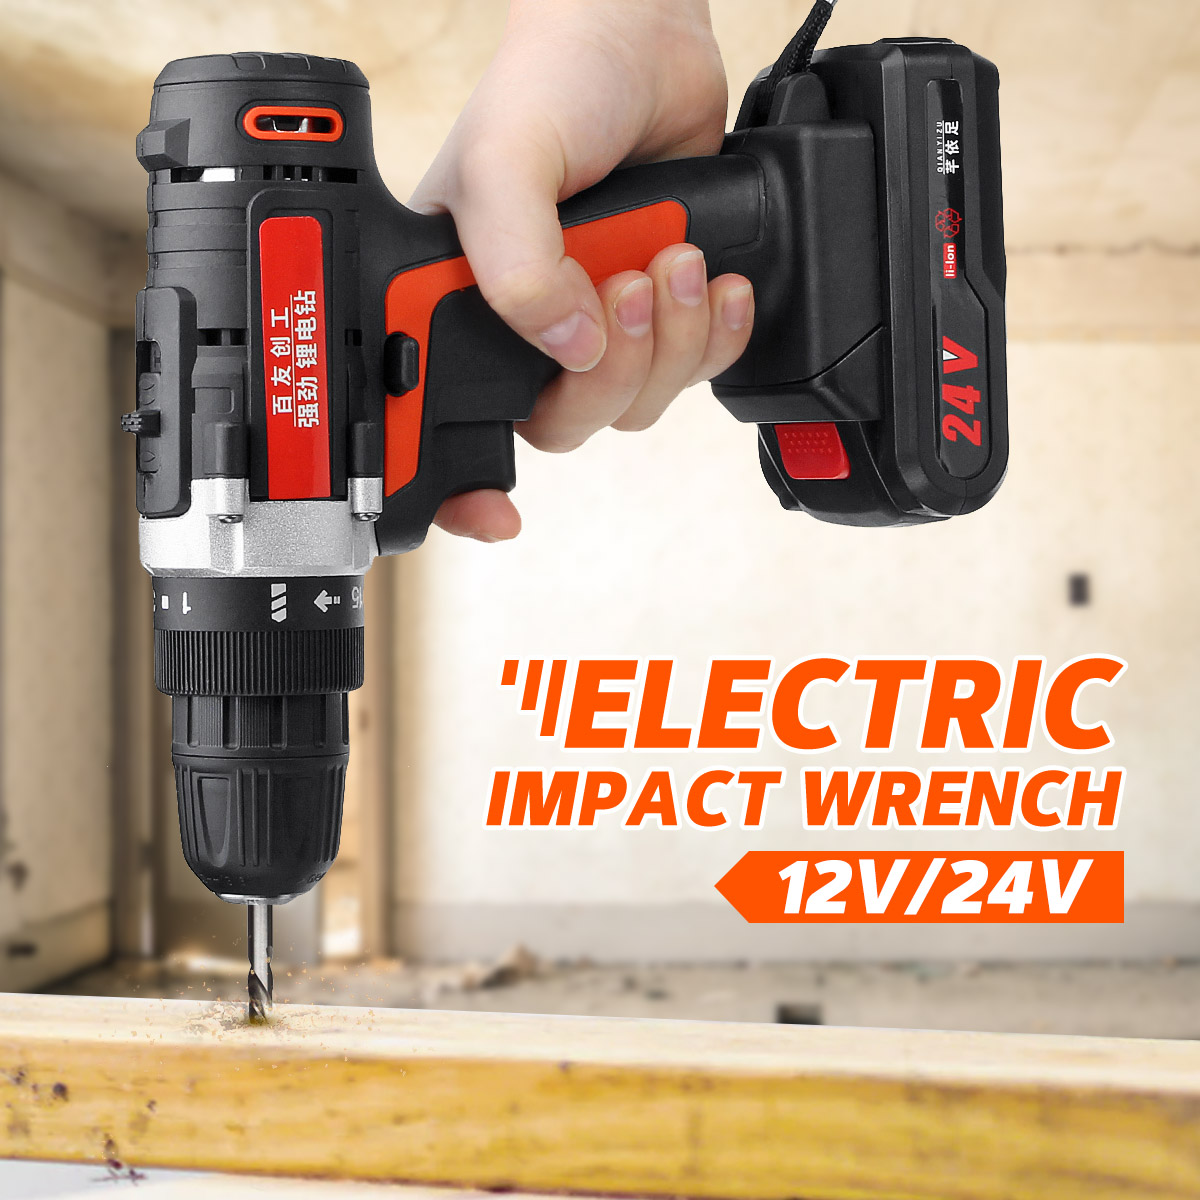 Strict 12v/24v Electric Wrench 400nm Lithium-ion Cordless Drill Impact Wrench Rechargeable Battery Socket Adapters Set High Torque Tool Cheapest Price From Our Site